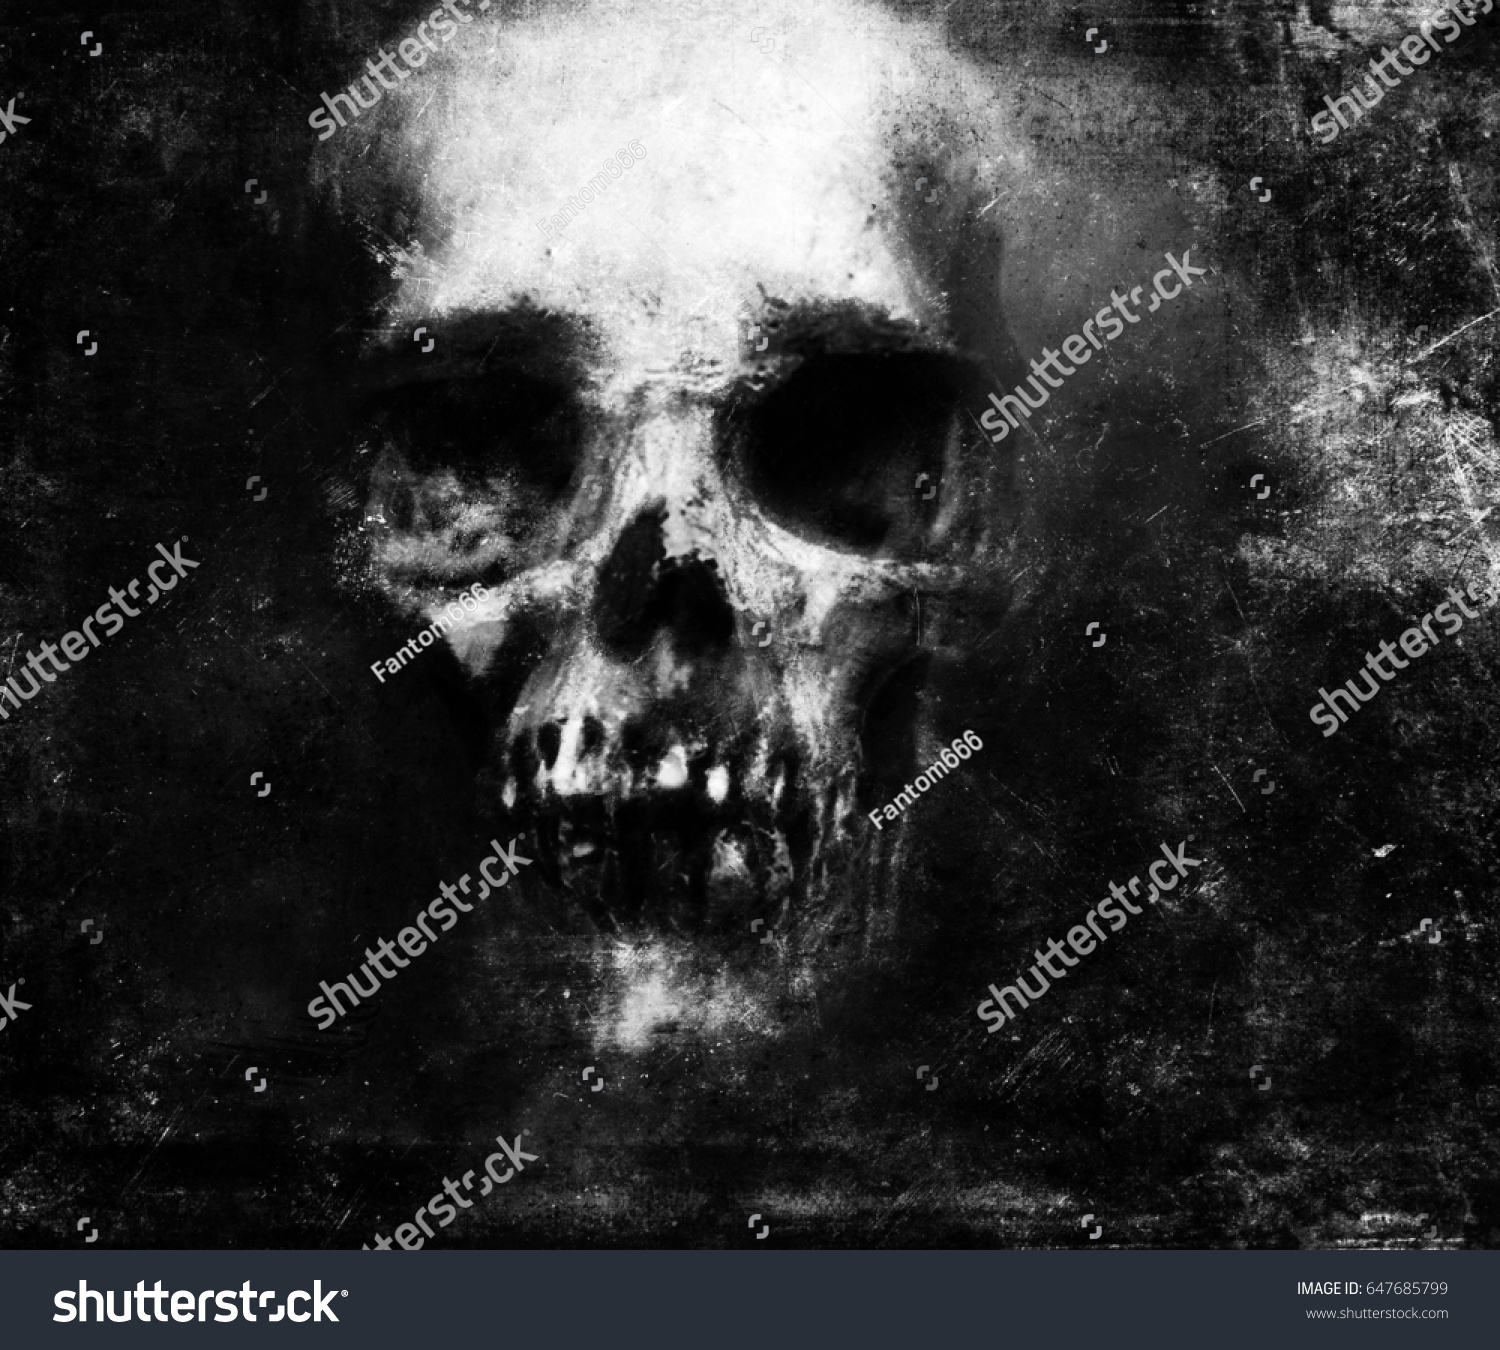 Cool Wallpaper Halloween Grunge - stock-photo-scary-grunge-skull-wallpaper-halloween-background-647685799  Collection_528212.jpg